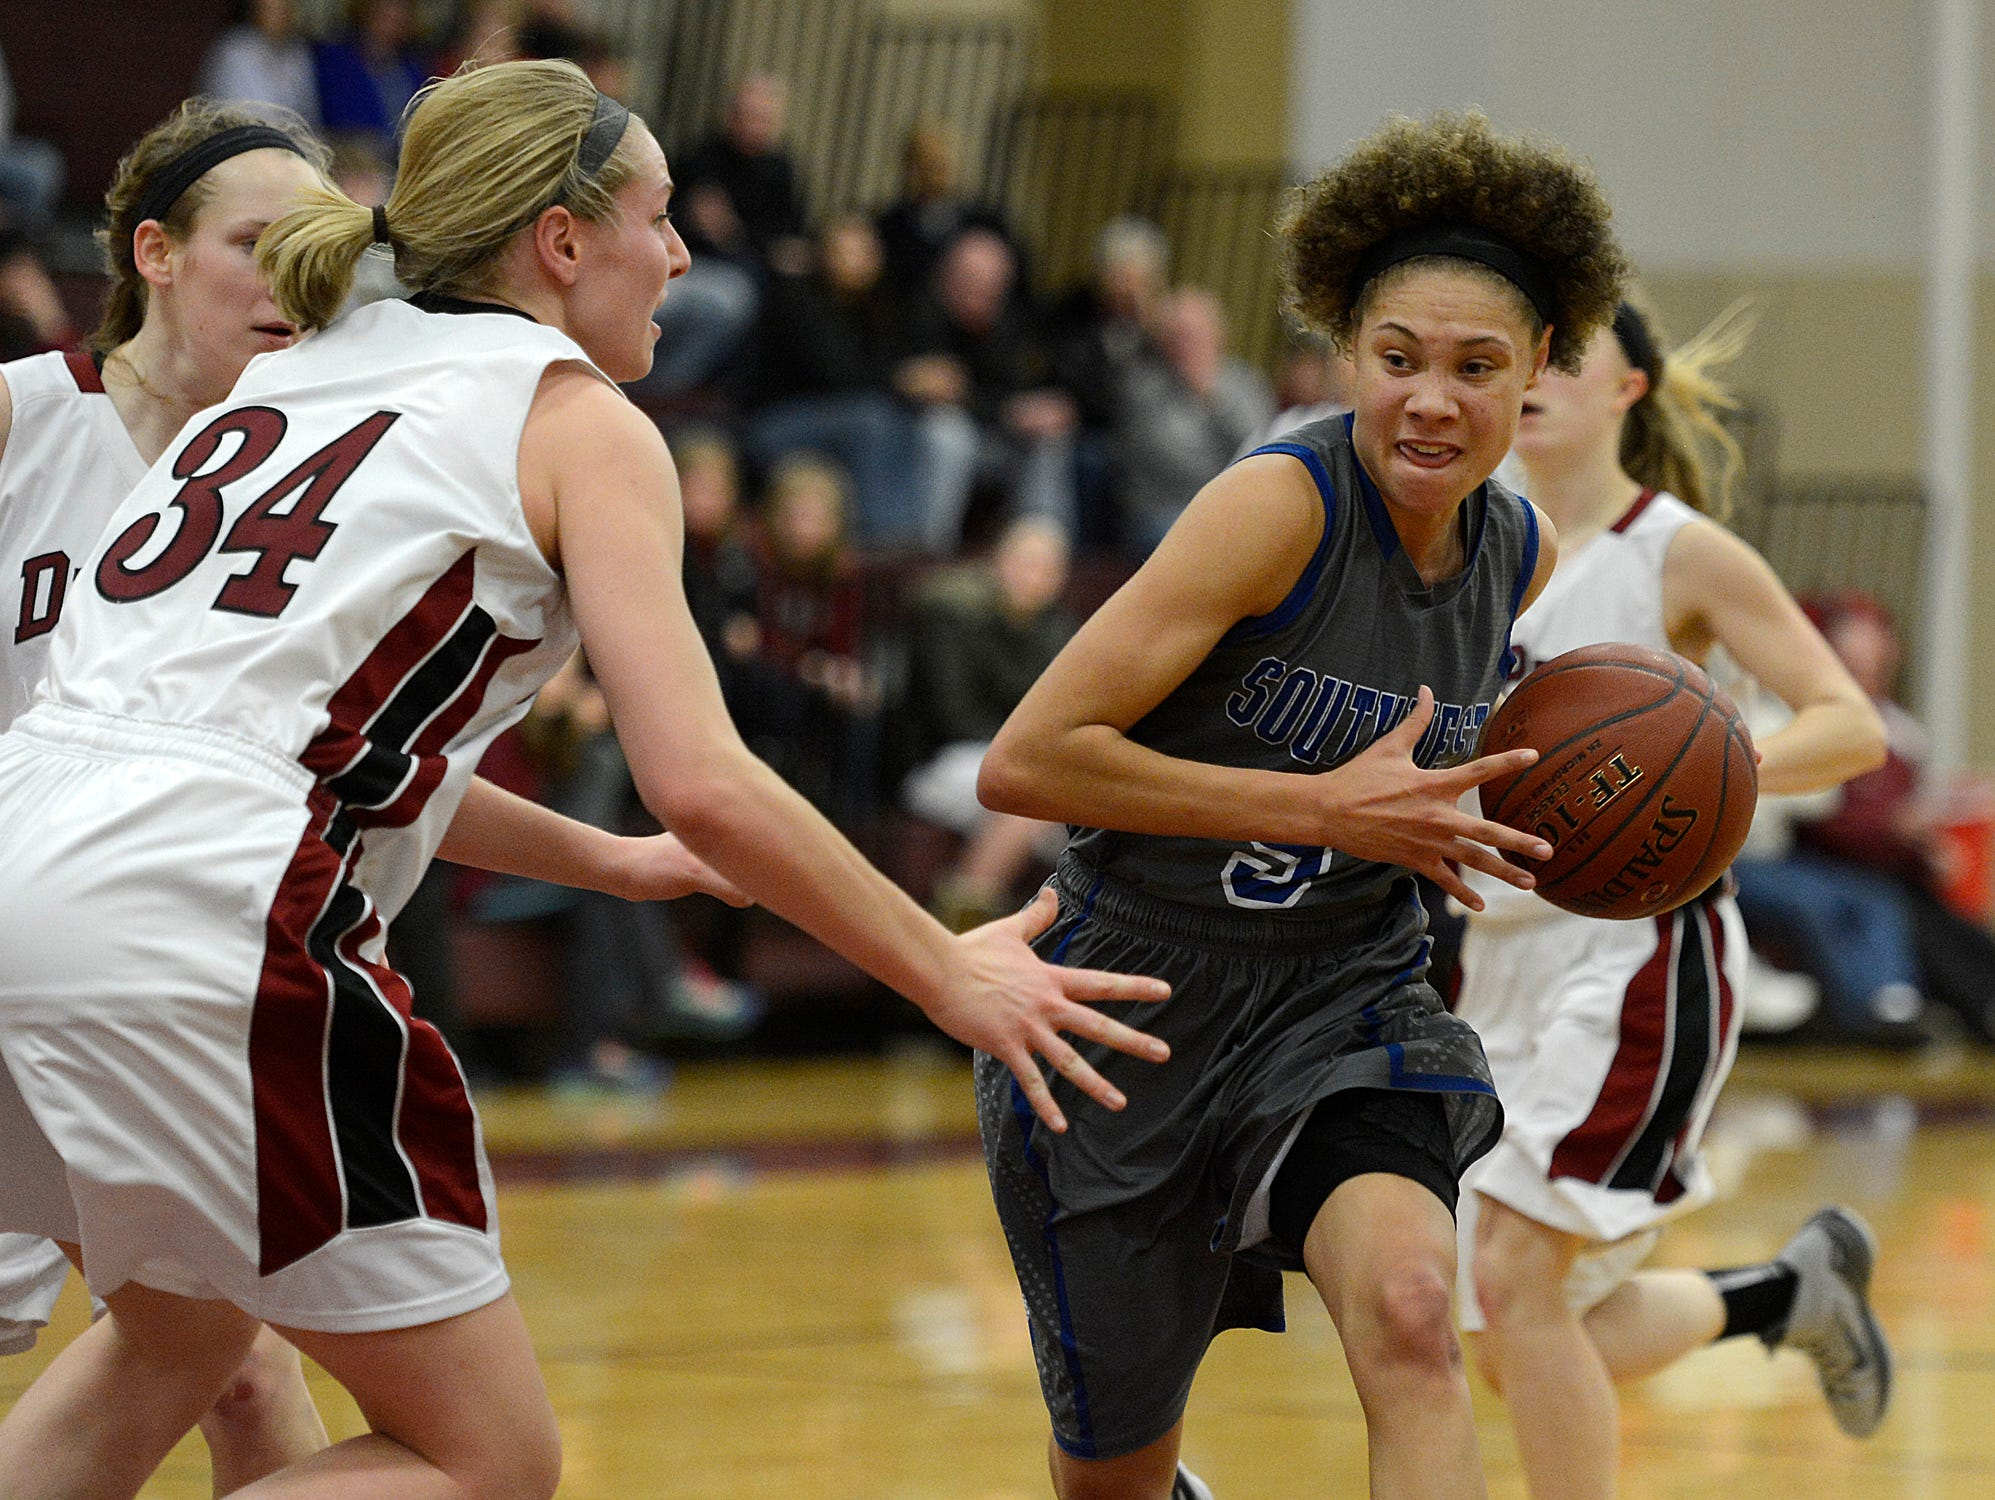 Green Bay Southwest's Natisha Hiedeman (5) drives to the basket past De Pere's Sarah Kuehn (34) in the fourth quarter at De Pere High School.